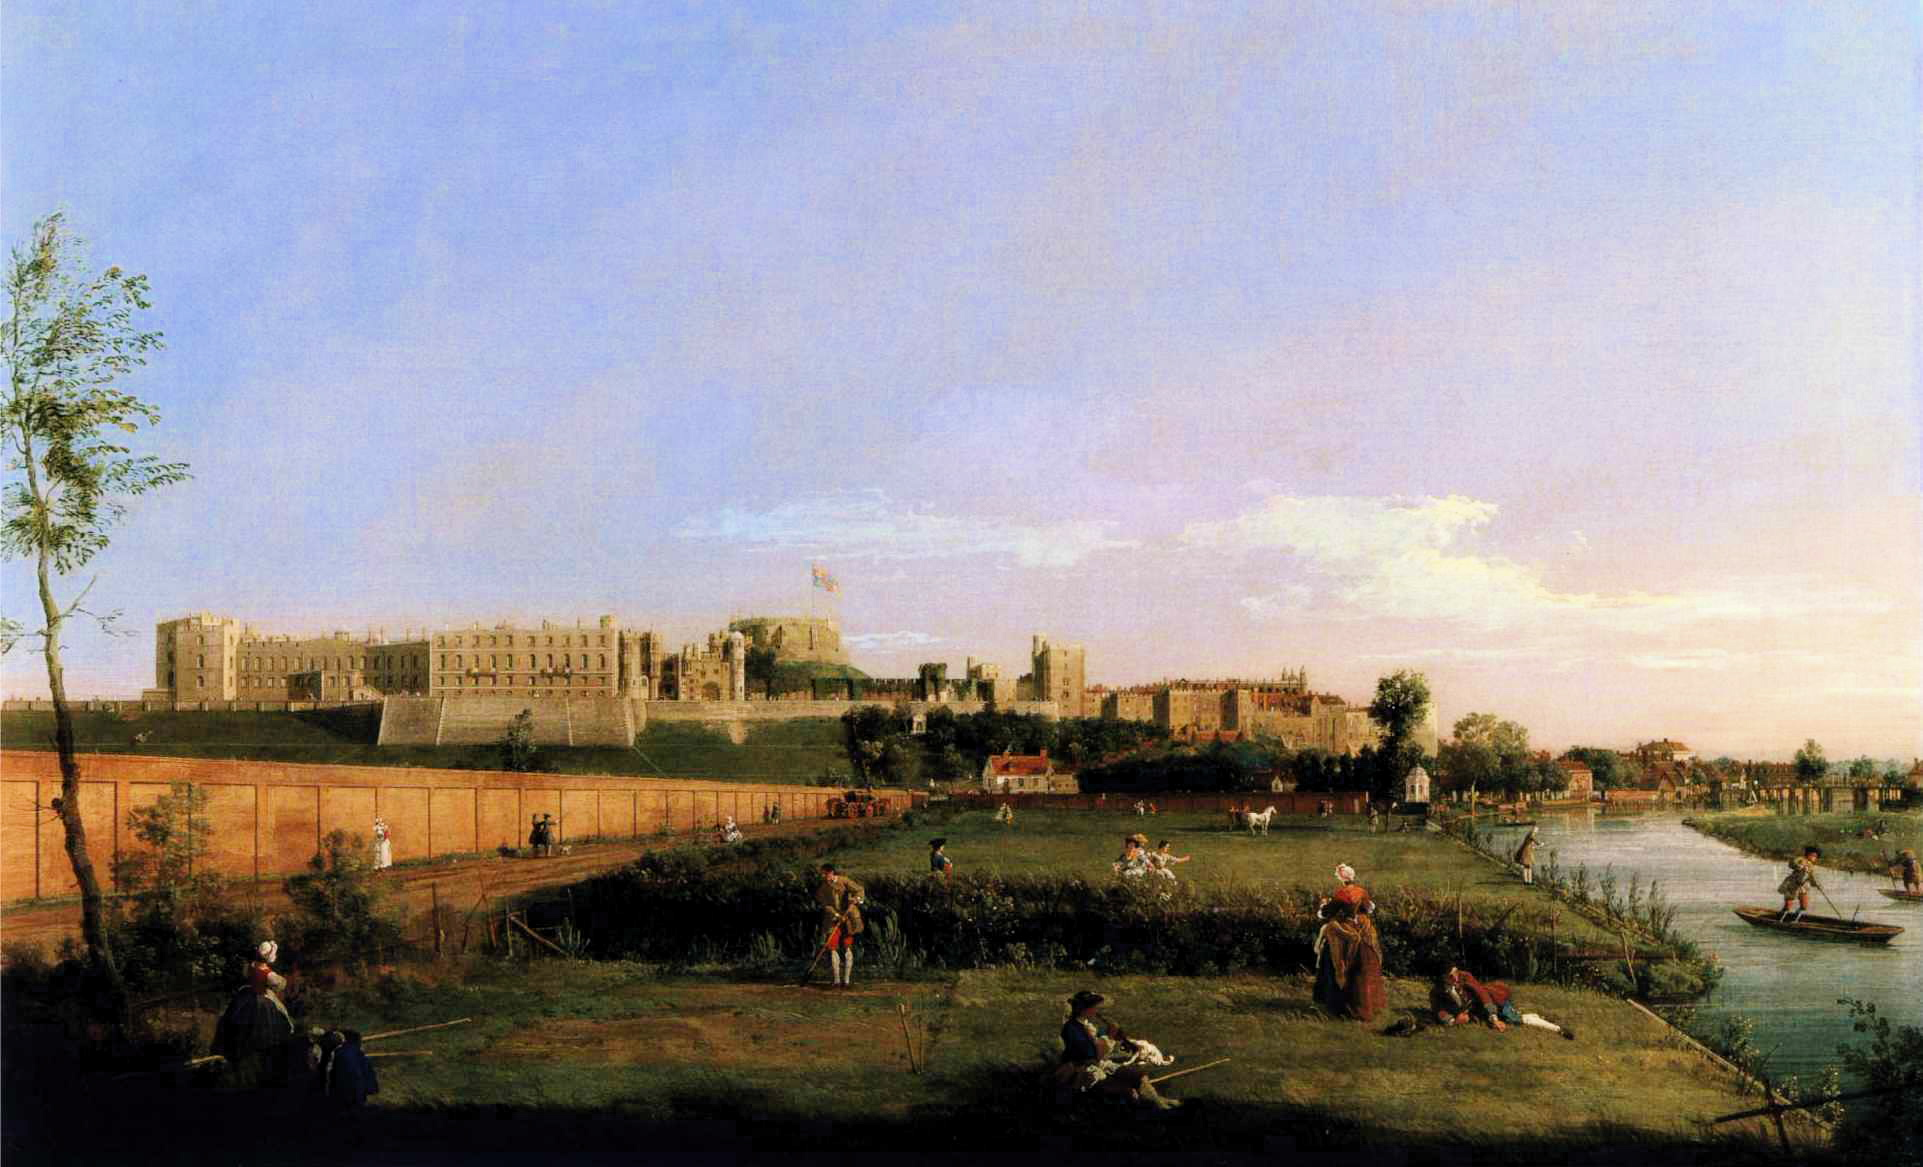 http://upload.wikimedia.org/wikipedia/commons/f/f7/Canaletto_-_Windsor_Castle.JPG